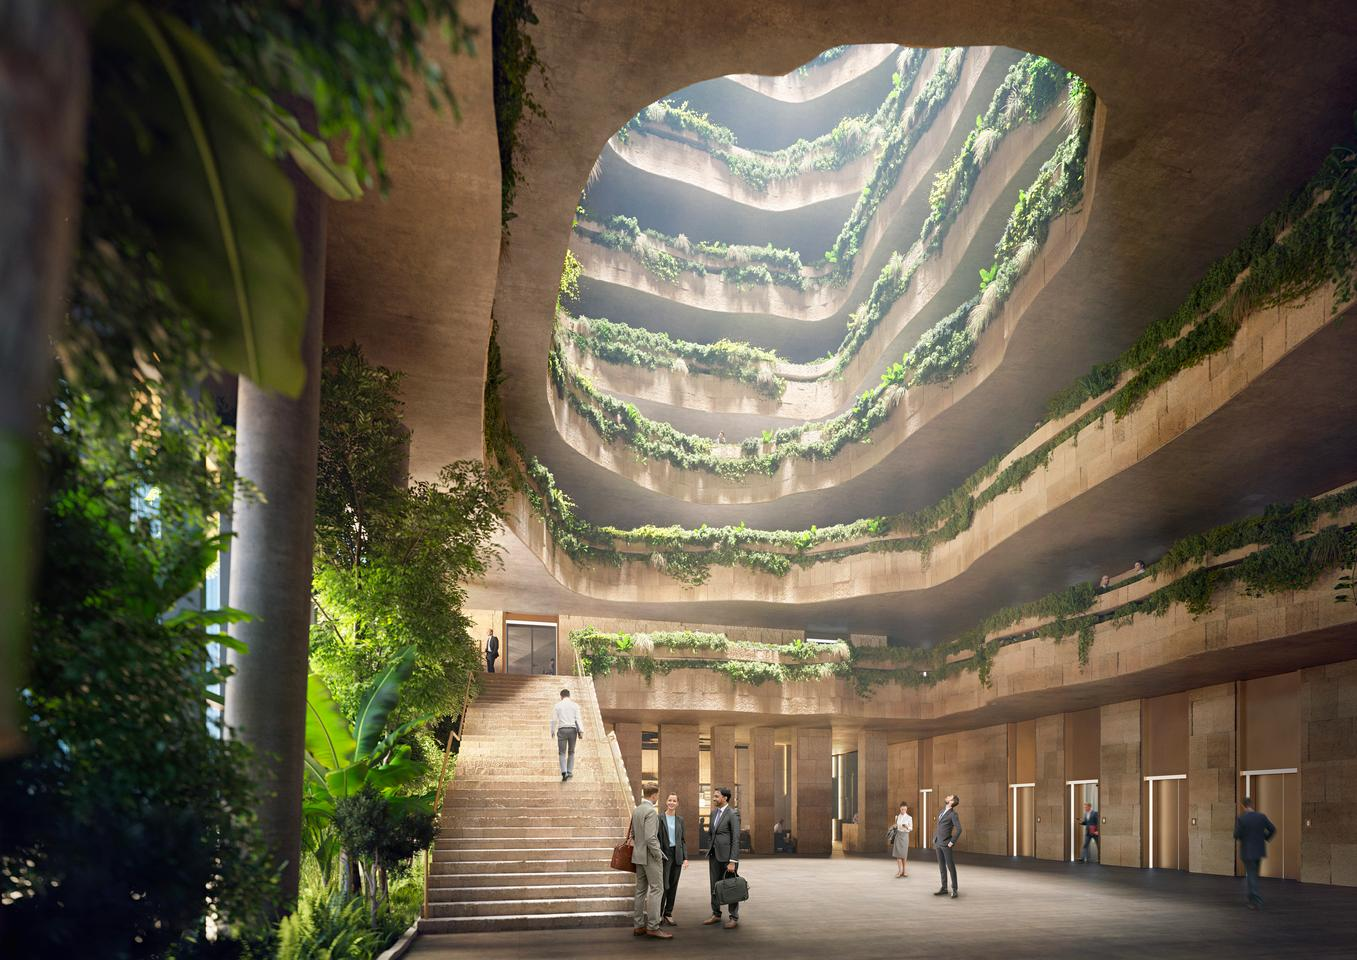 The Sanko Headquarters' interior will be mostly given over to office space and arranged around a large central atrium